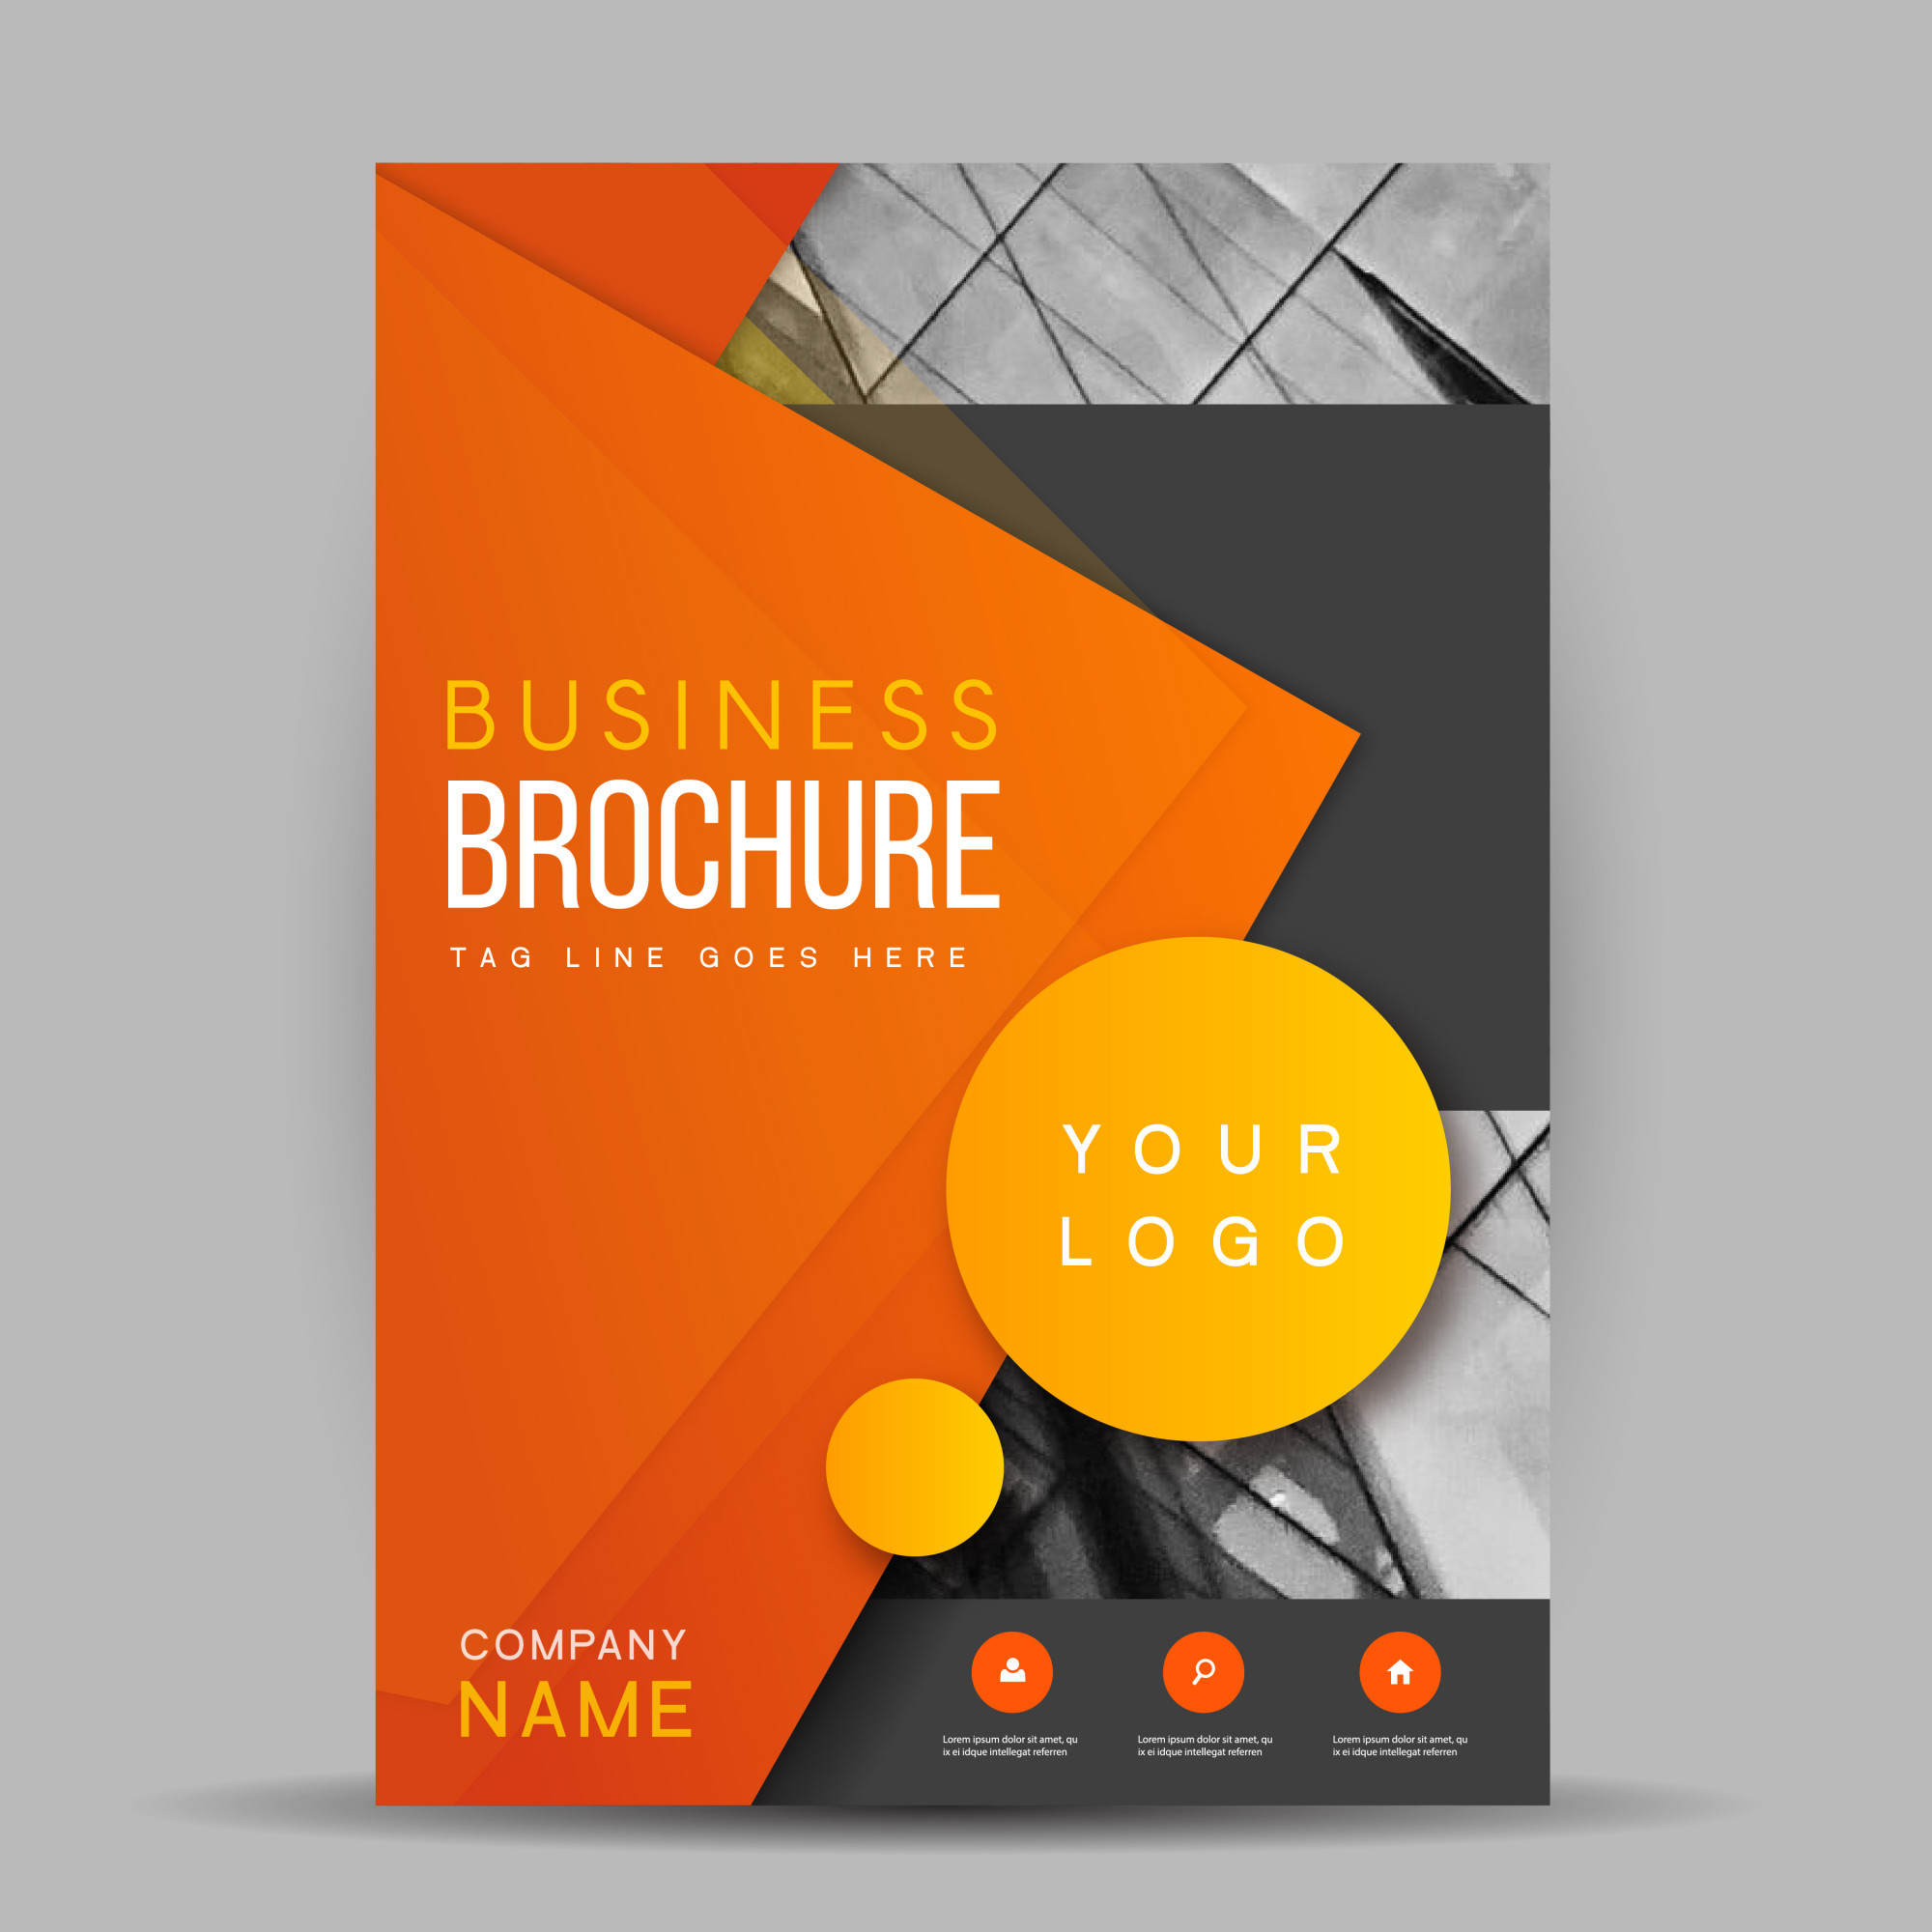 Creative Vector Brochure Template Design